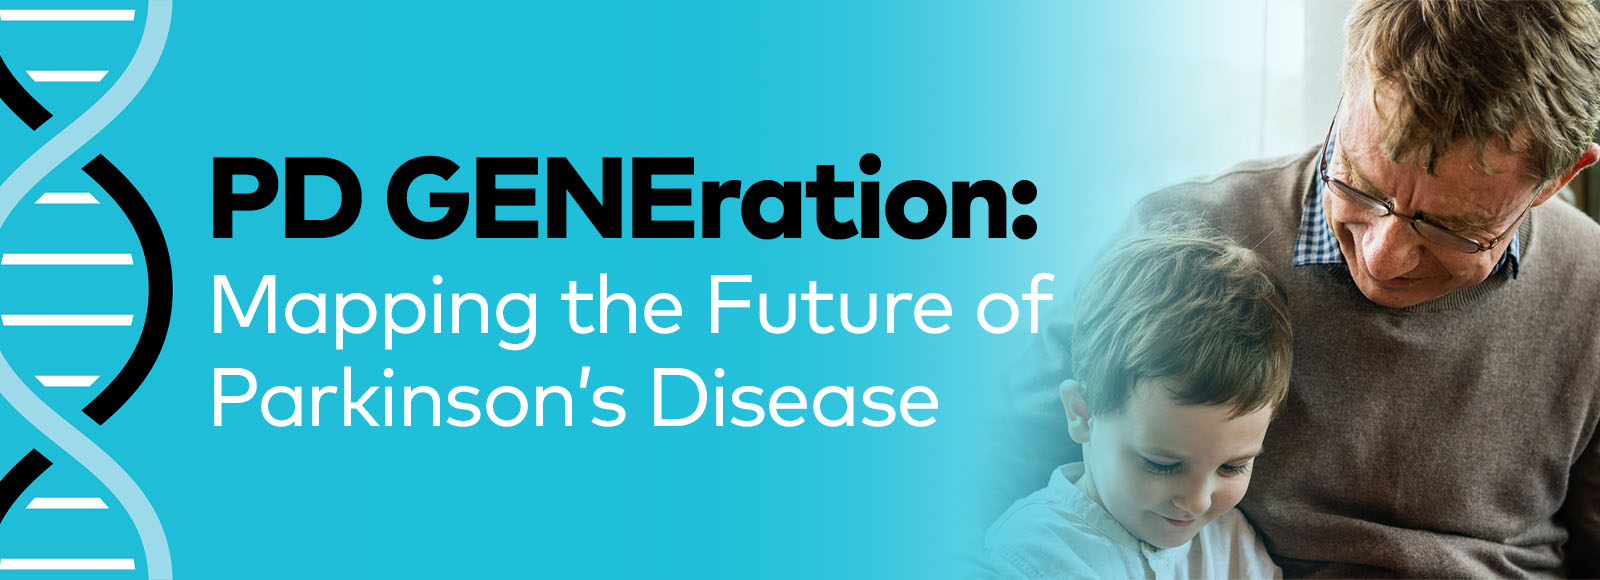 PD GENEration: Mapping the Future of Parkinson's Disease